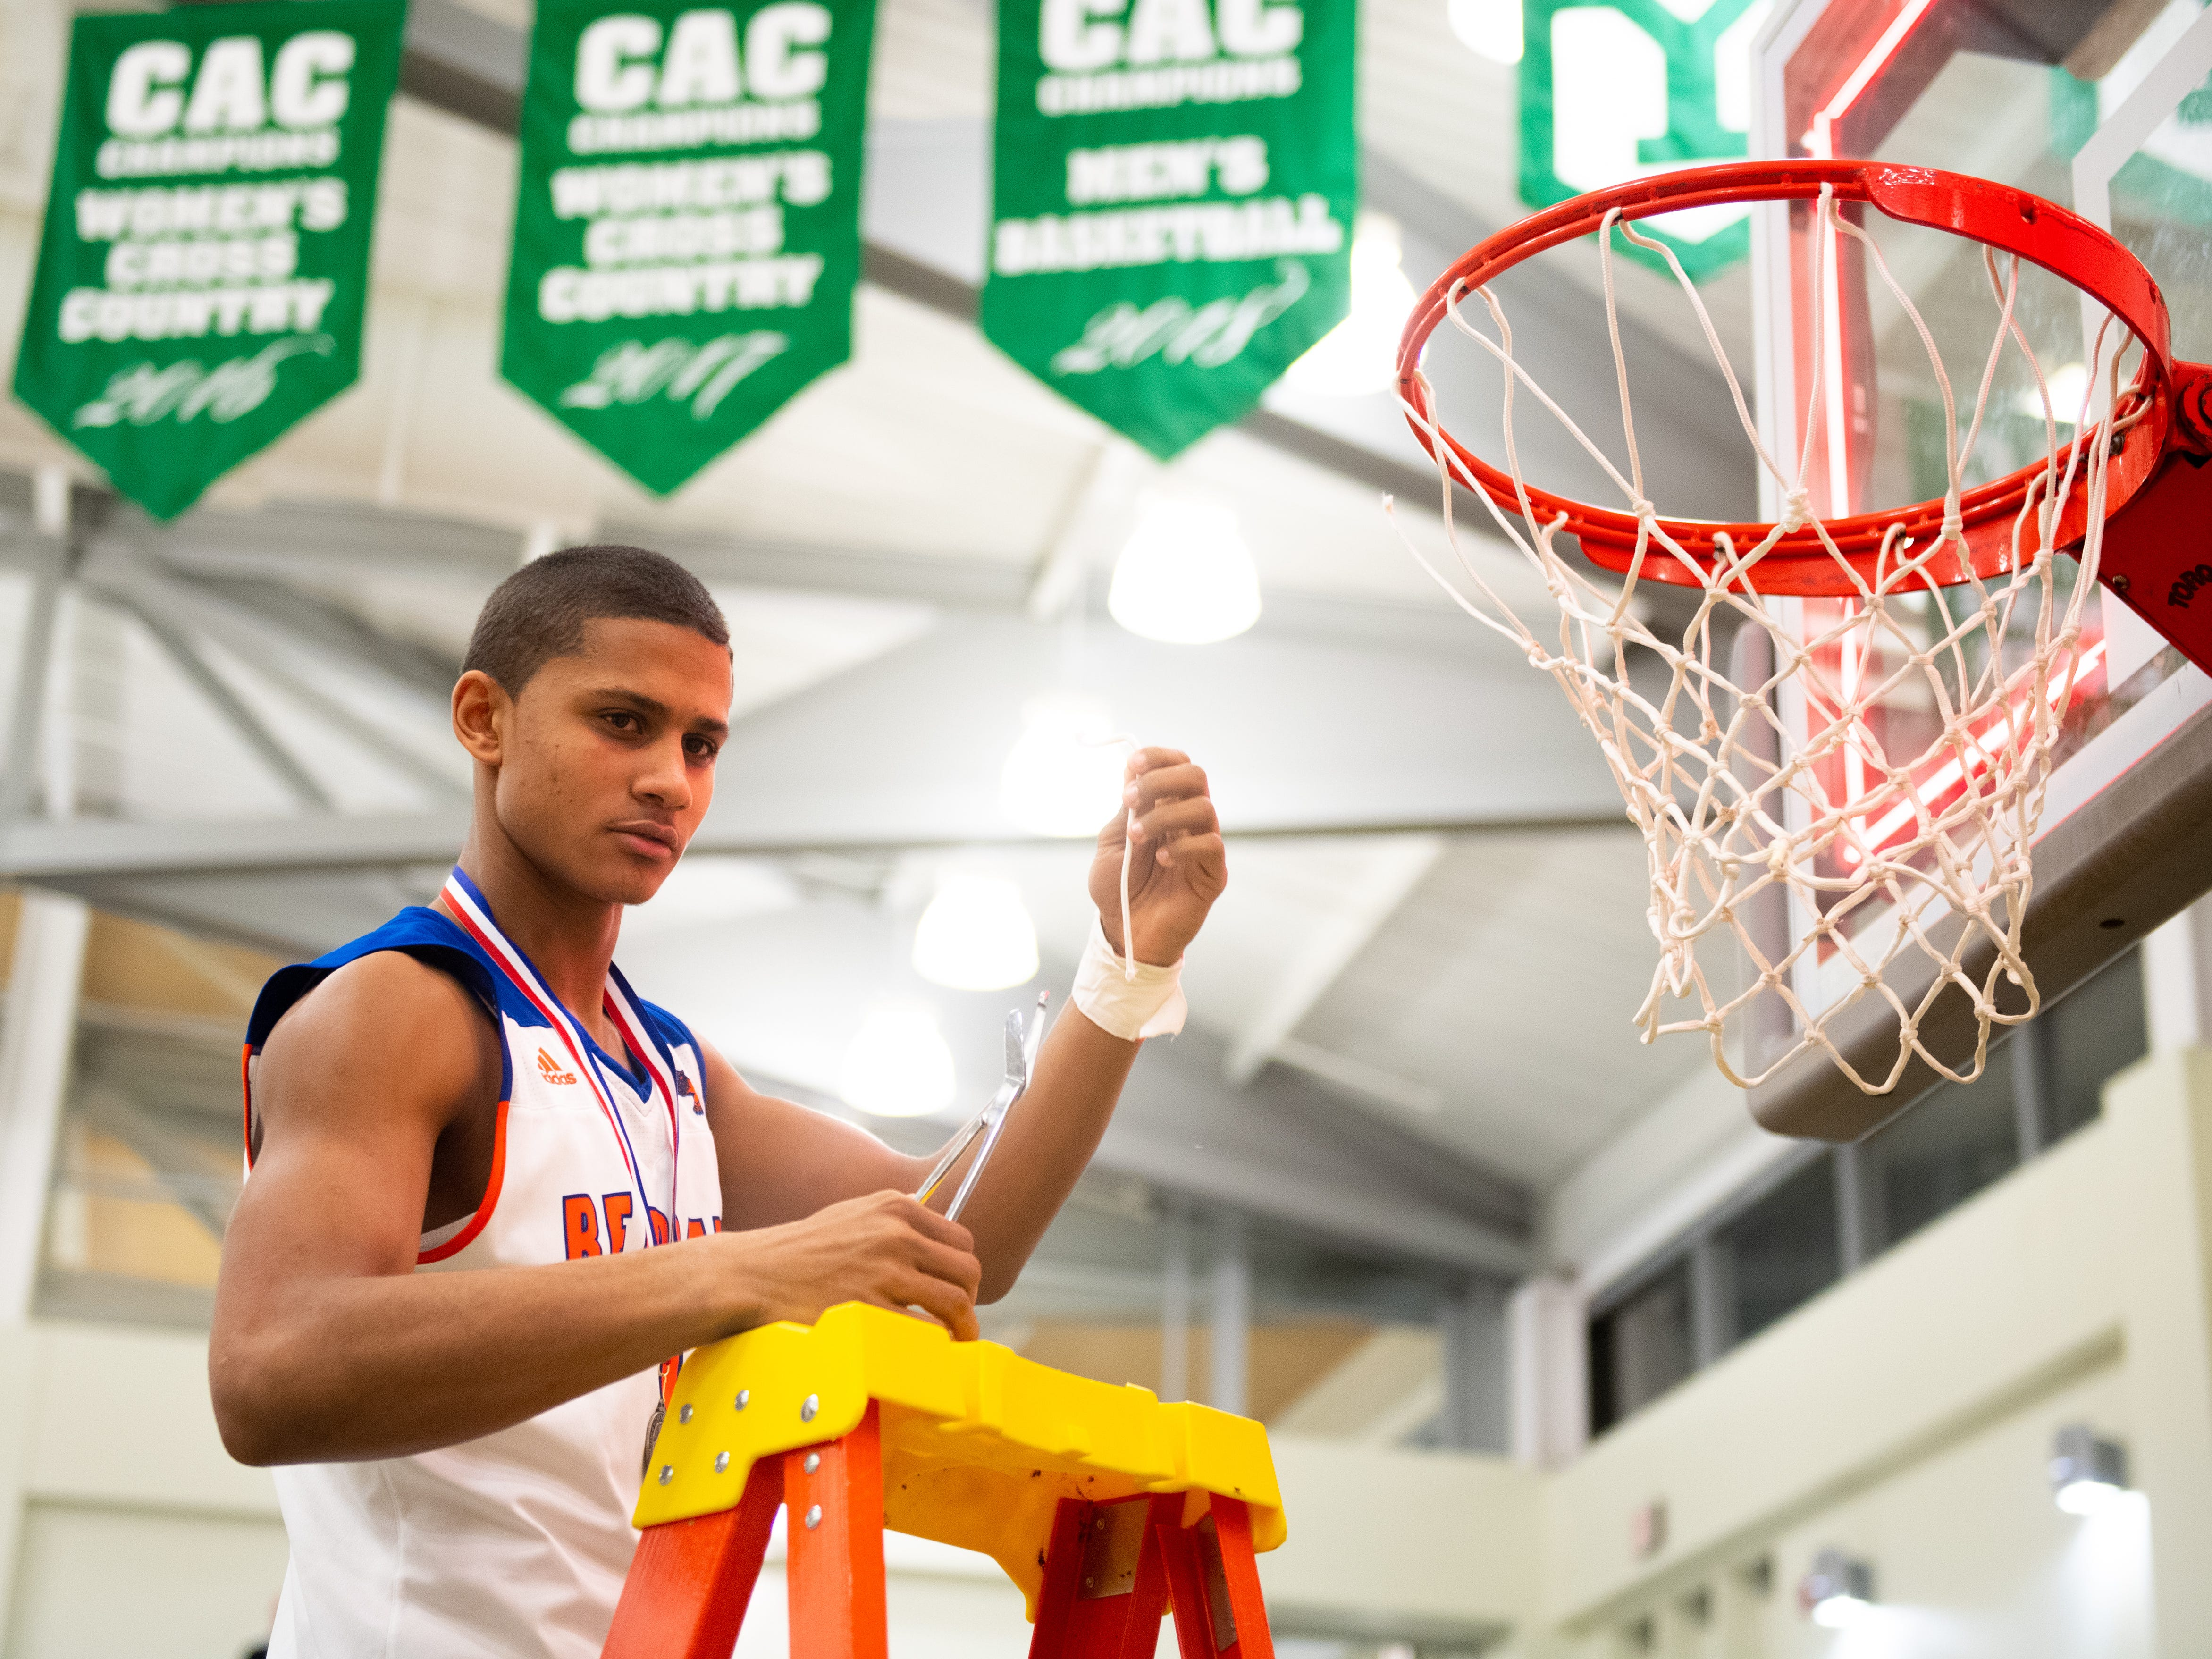 Tobee Stokes (1) poses with a piece of net that he cut off after the YAIAA Division I title game between York High and New Oxford, Friday, February 15, 2019 at York College. The Bearcats defeated the Colonials 54 to 50.